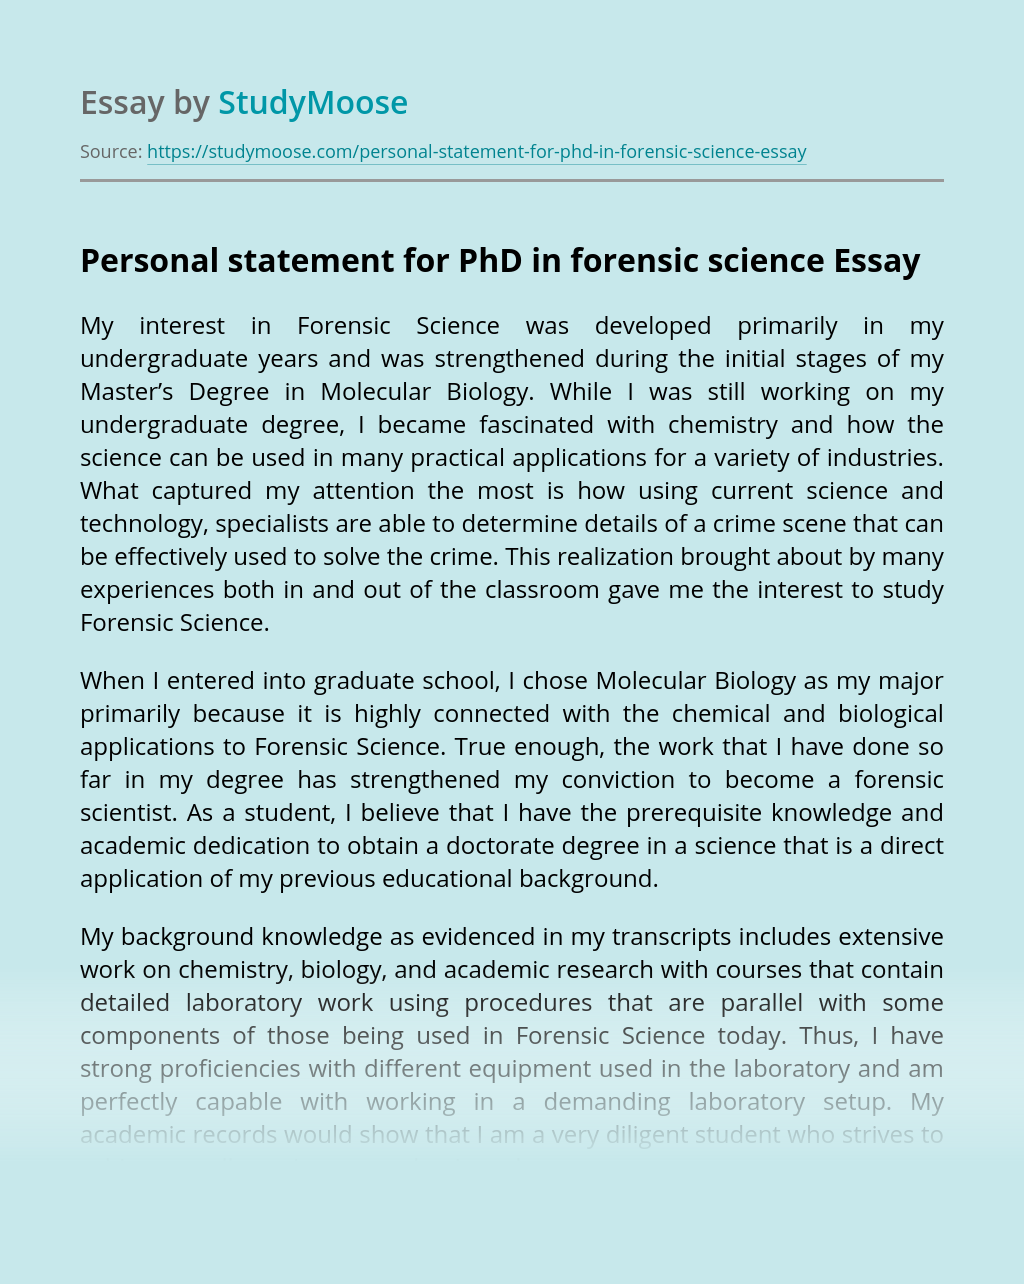 Personal statement for PhD in forensic science